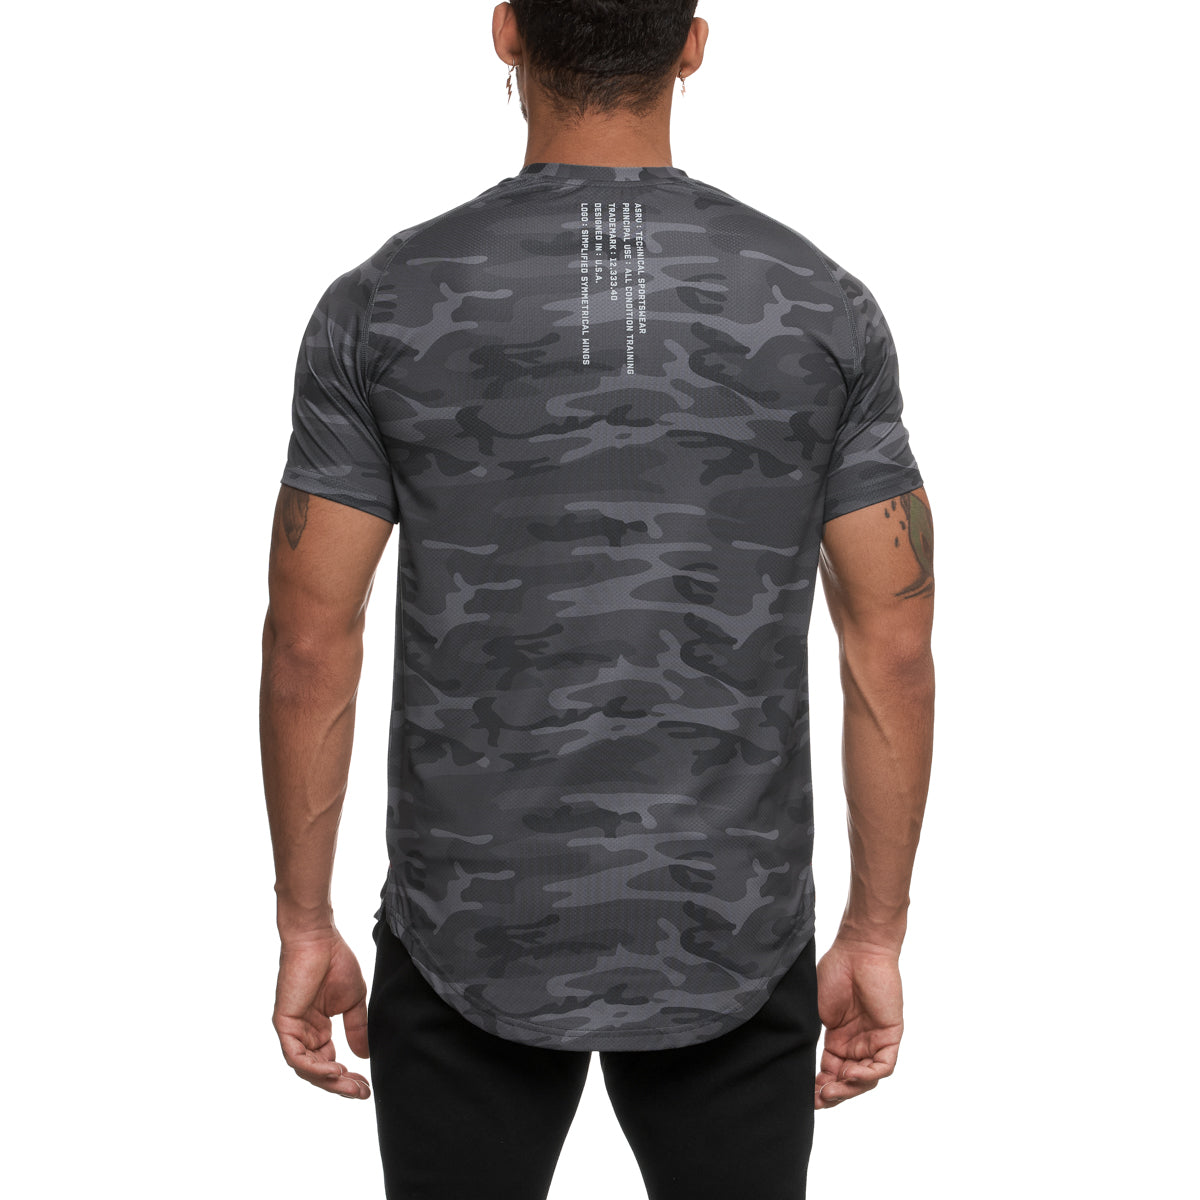 0164. Silver-Lite® Established Tee - Black Camo